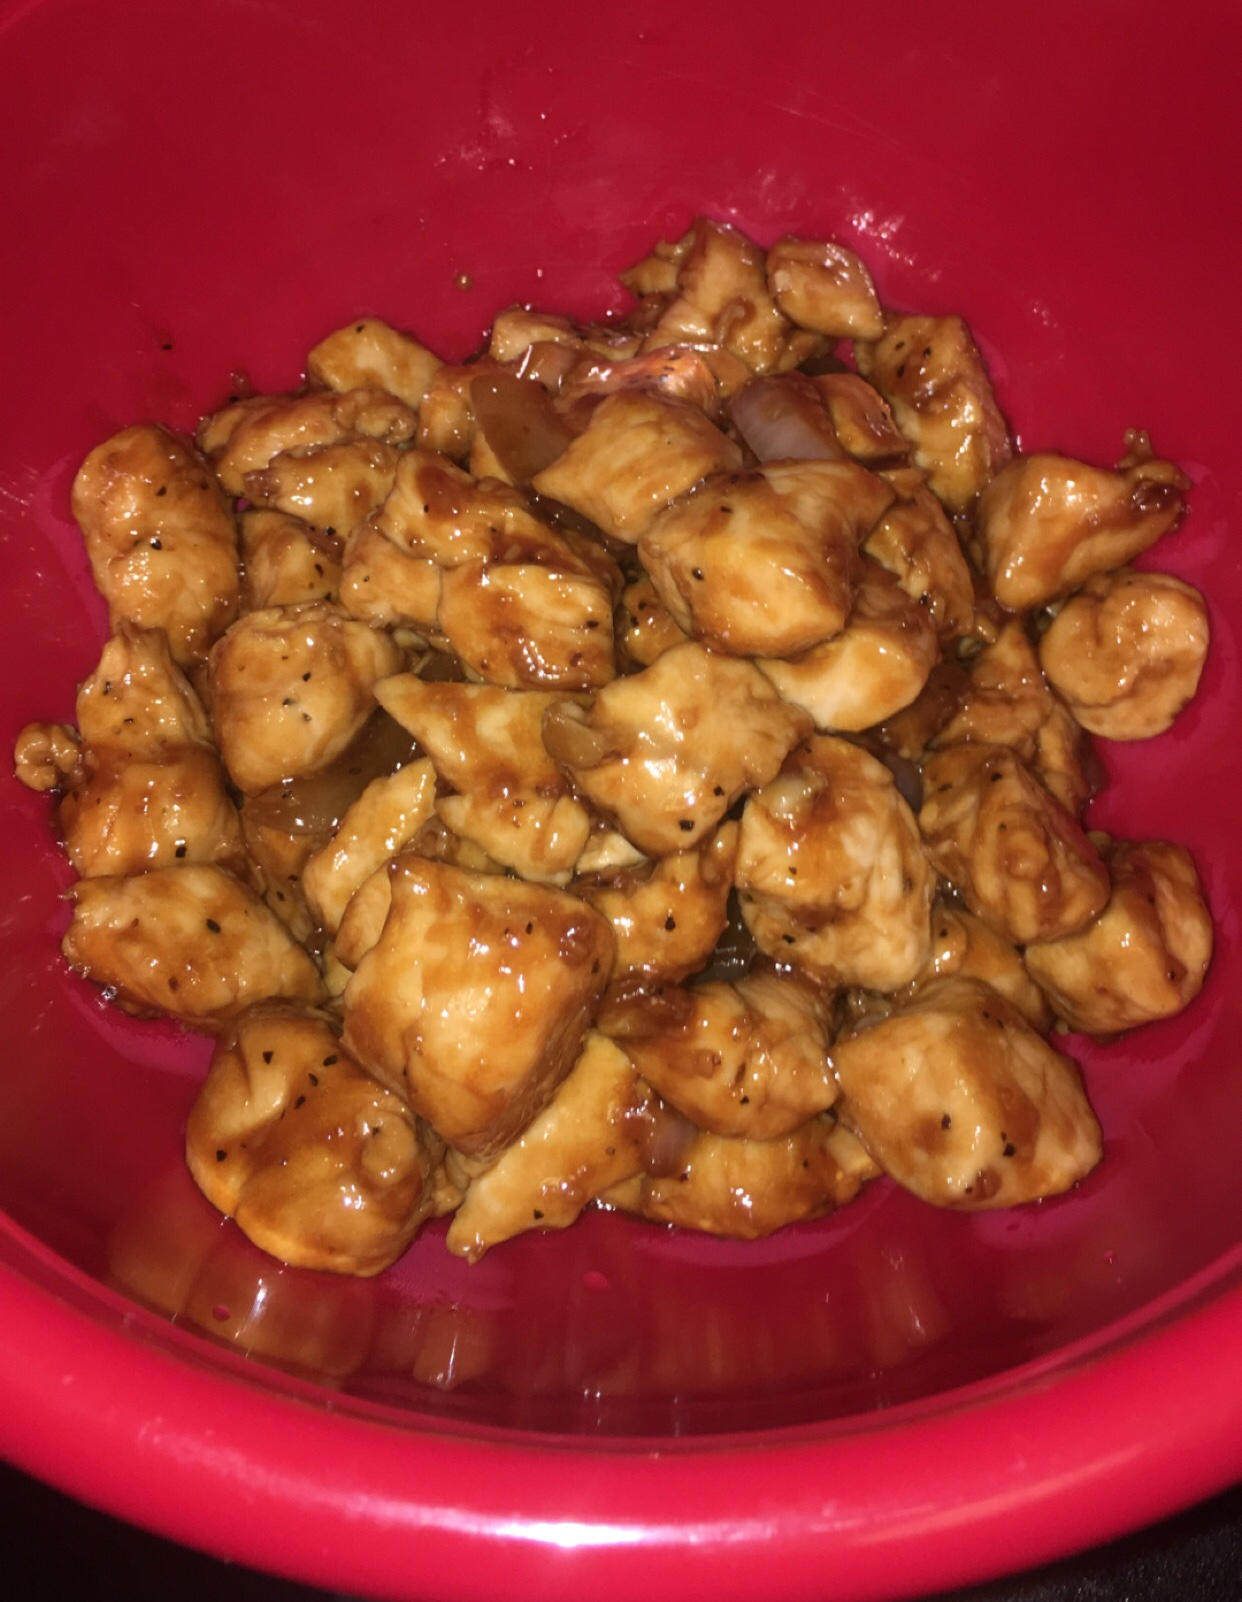 Teriyaki chicken in a red bowl.